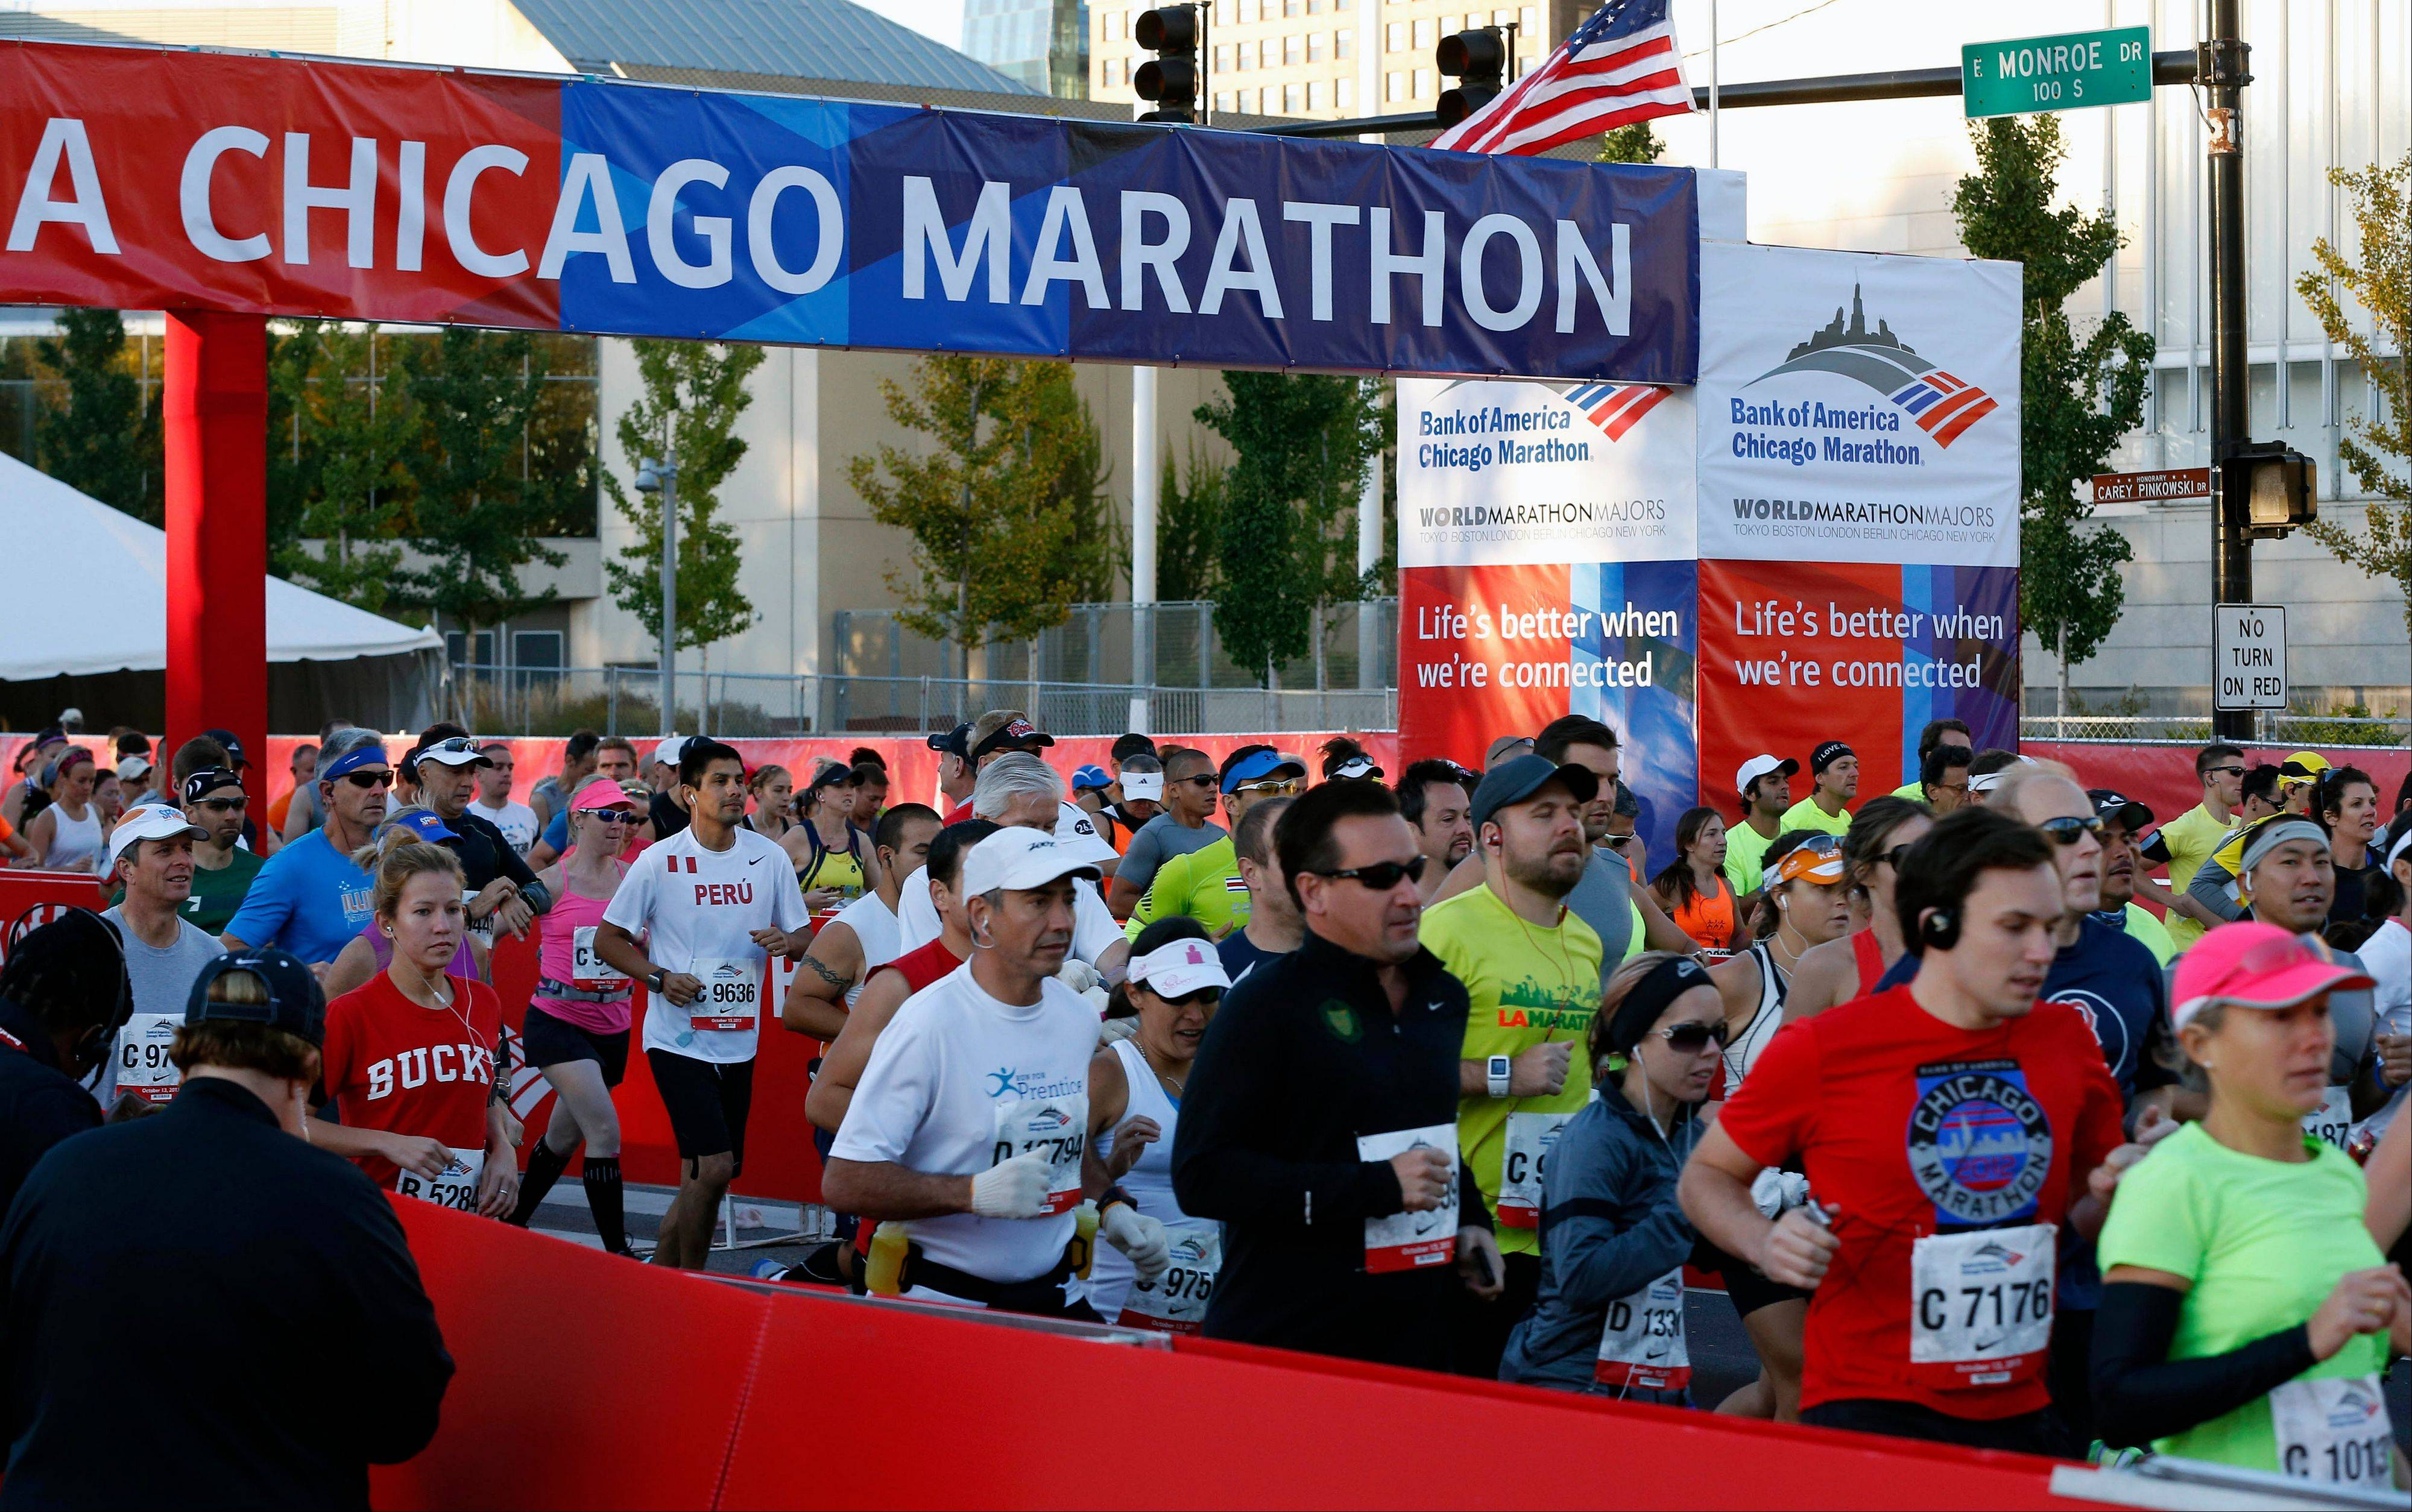 Runners depart from the starting line during the Chicago Marathon, Sunday, Oct. 13, 2013, in Chicago.